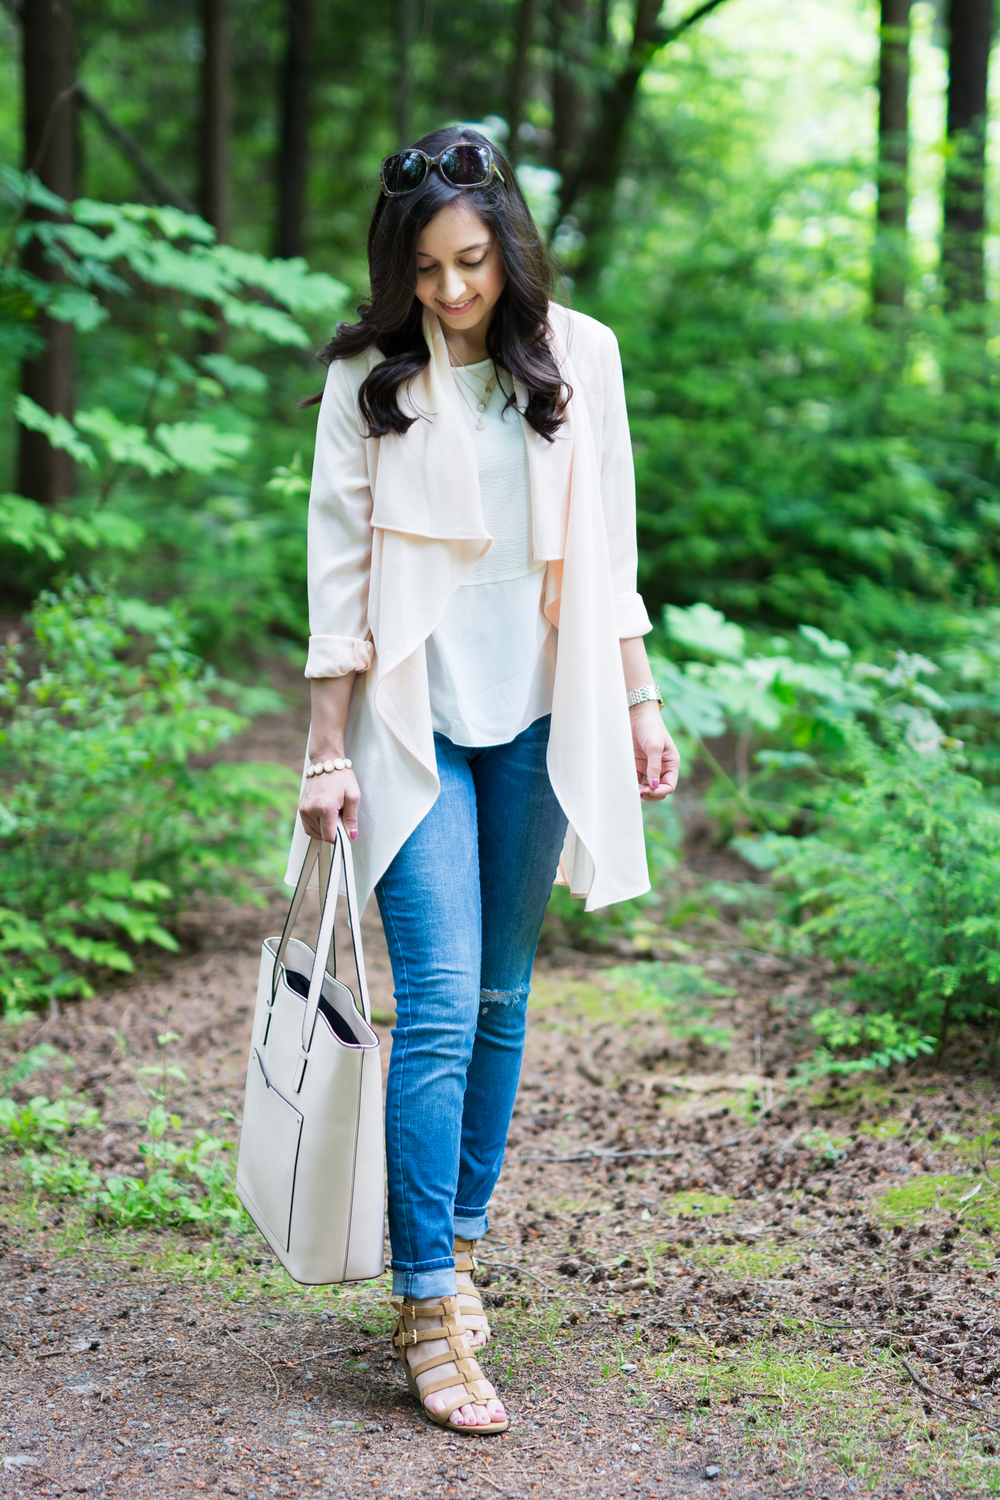 Vancouver vacation, blush pink drape trench, summer style, travel style, blush tote, distressed denim, monochromatic blush style, kate spade, nordstrom rack, zara, old navy, Forever 21, Michele, wedge sandals